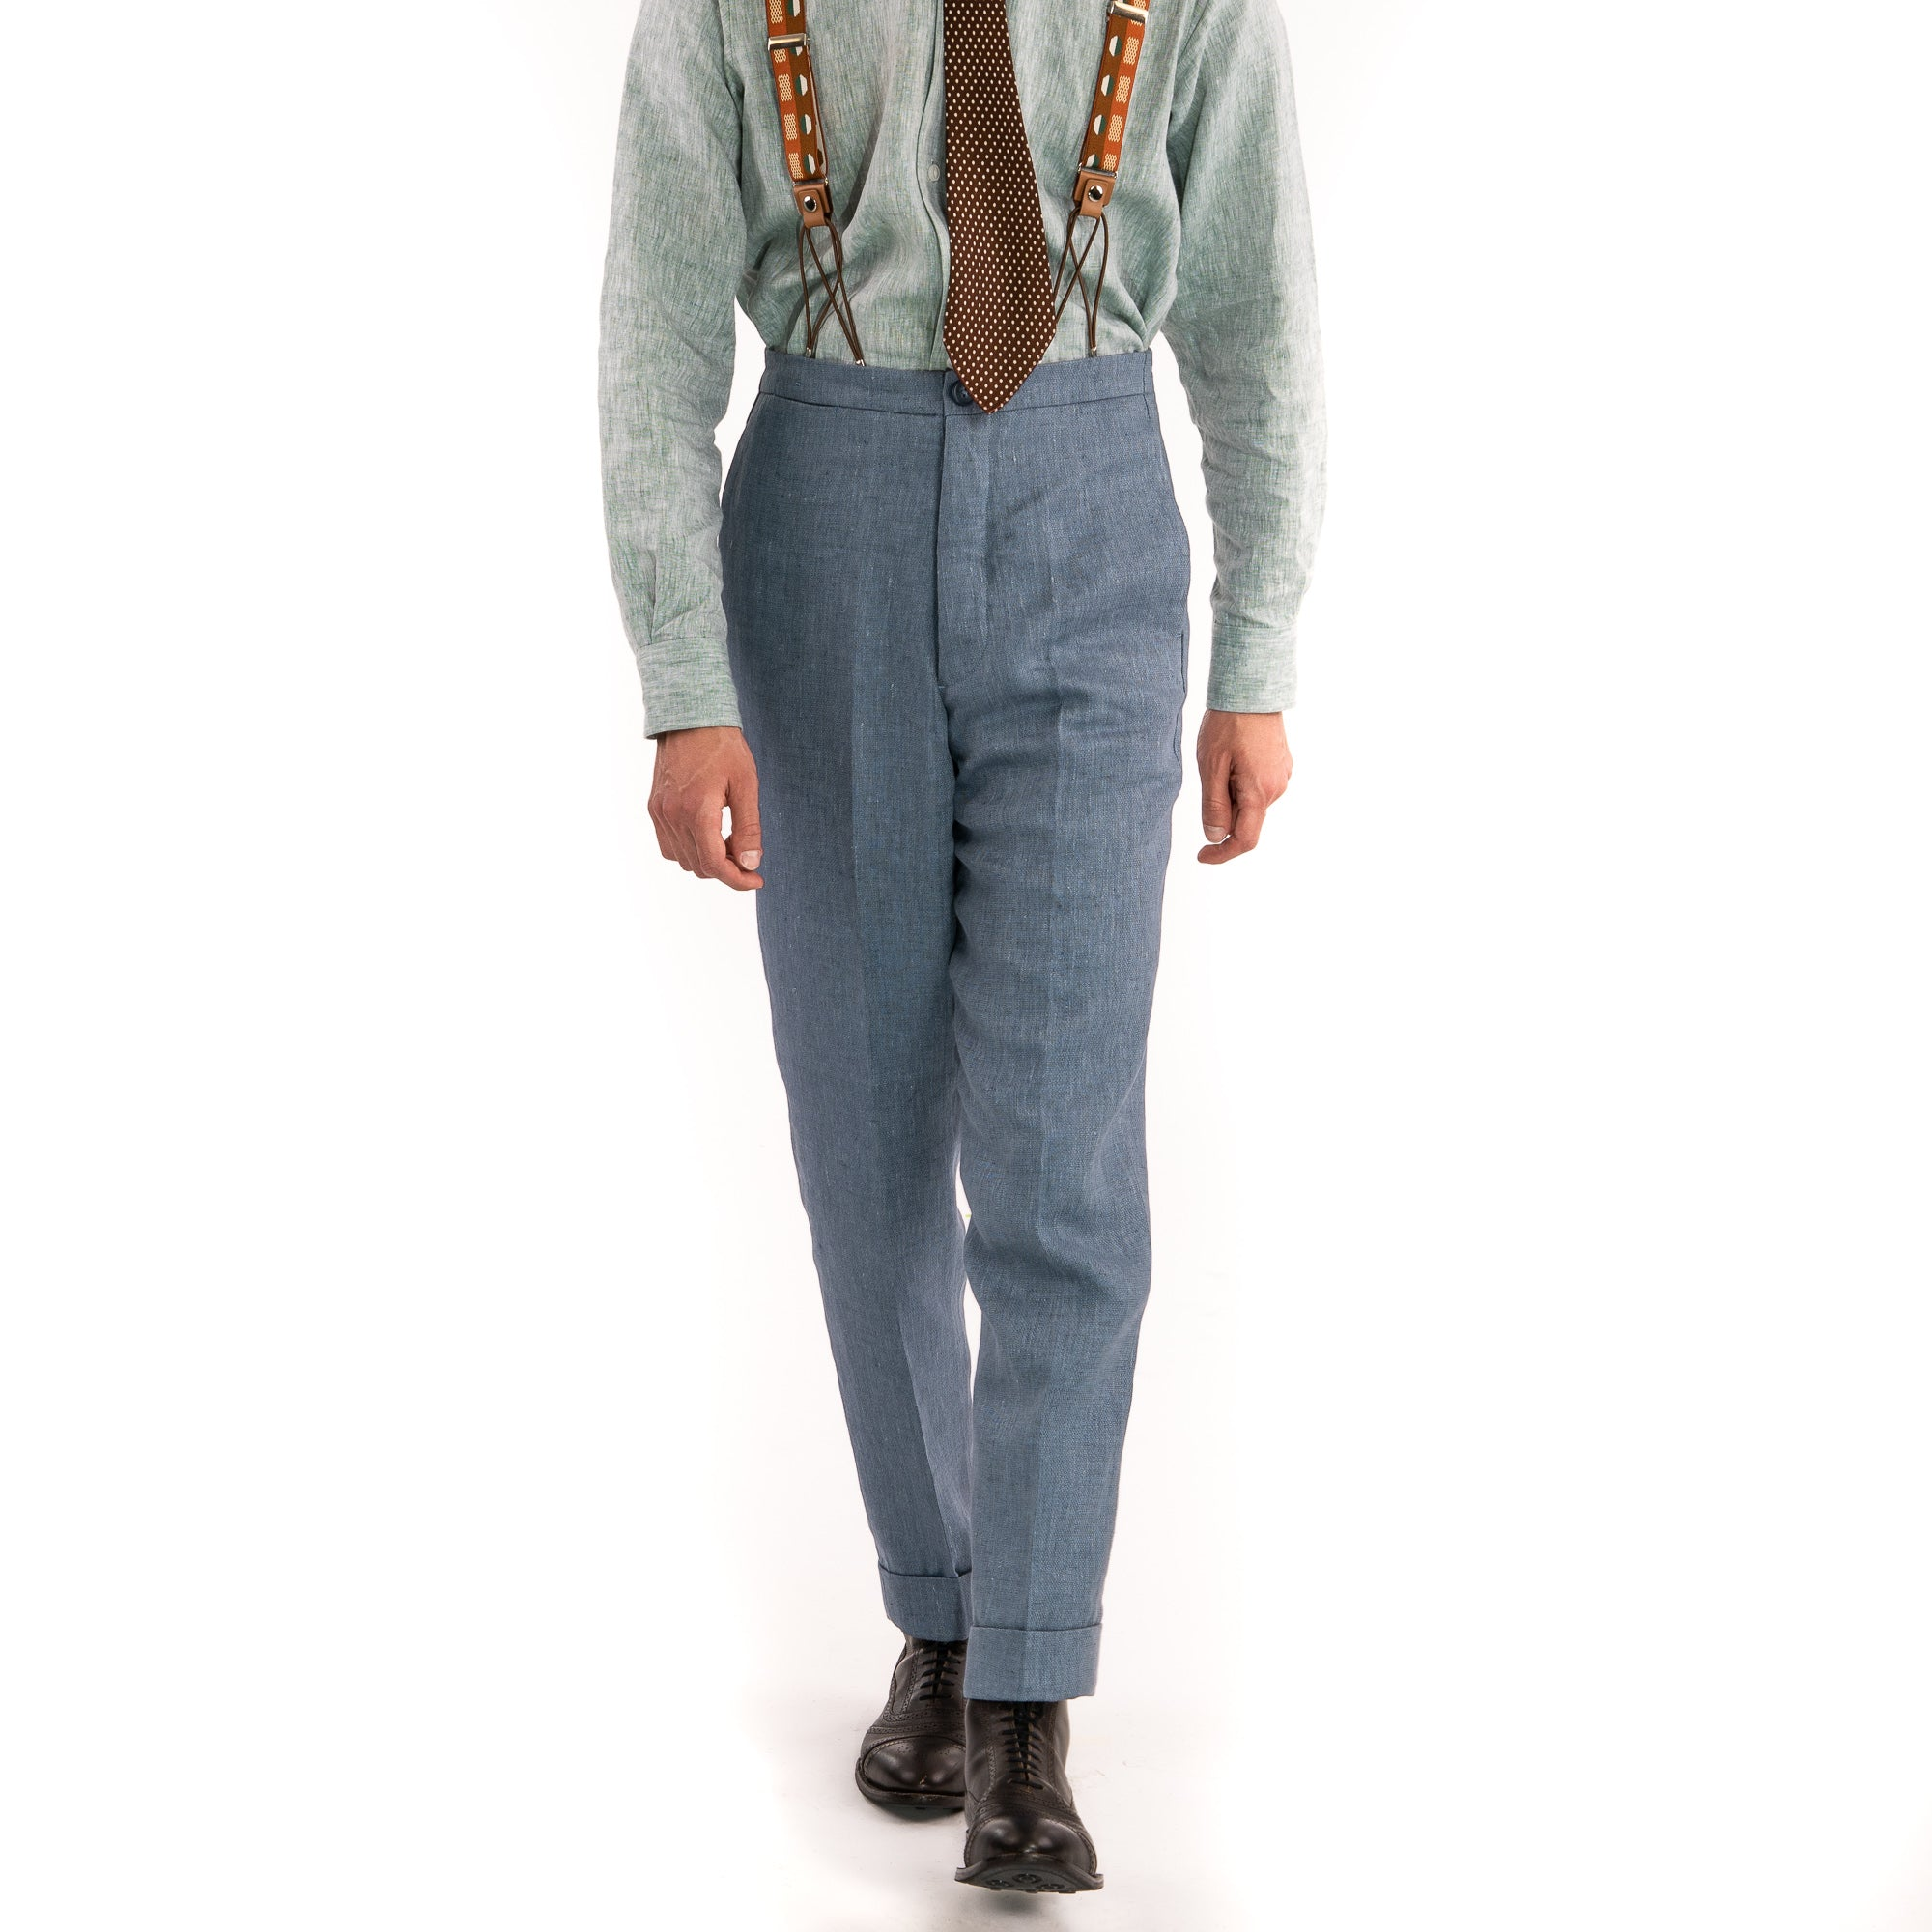 Supermarine Blue Vanderbilt Trousers